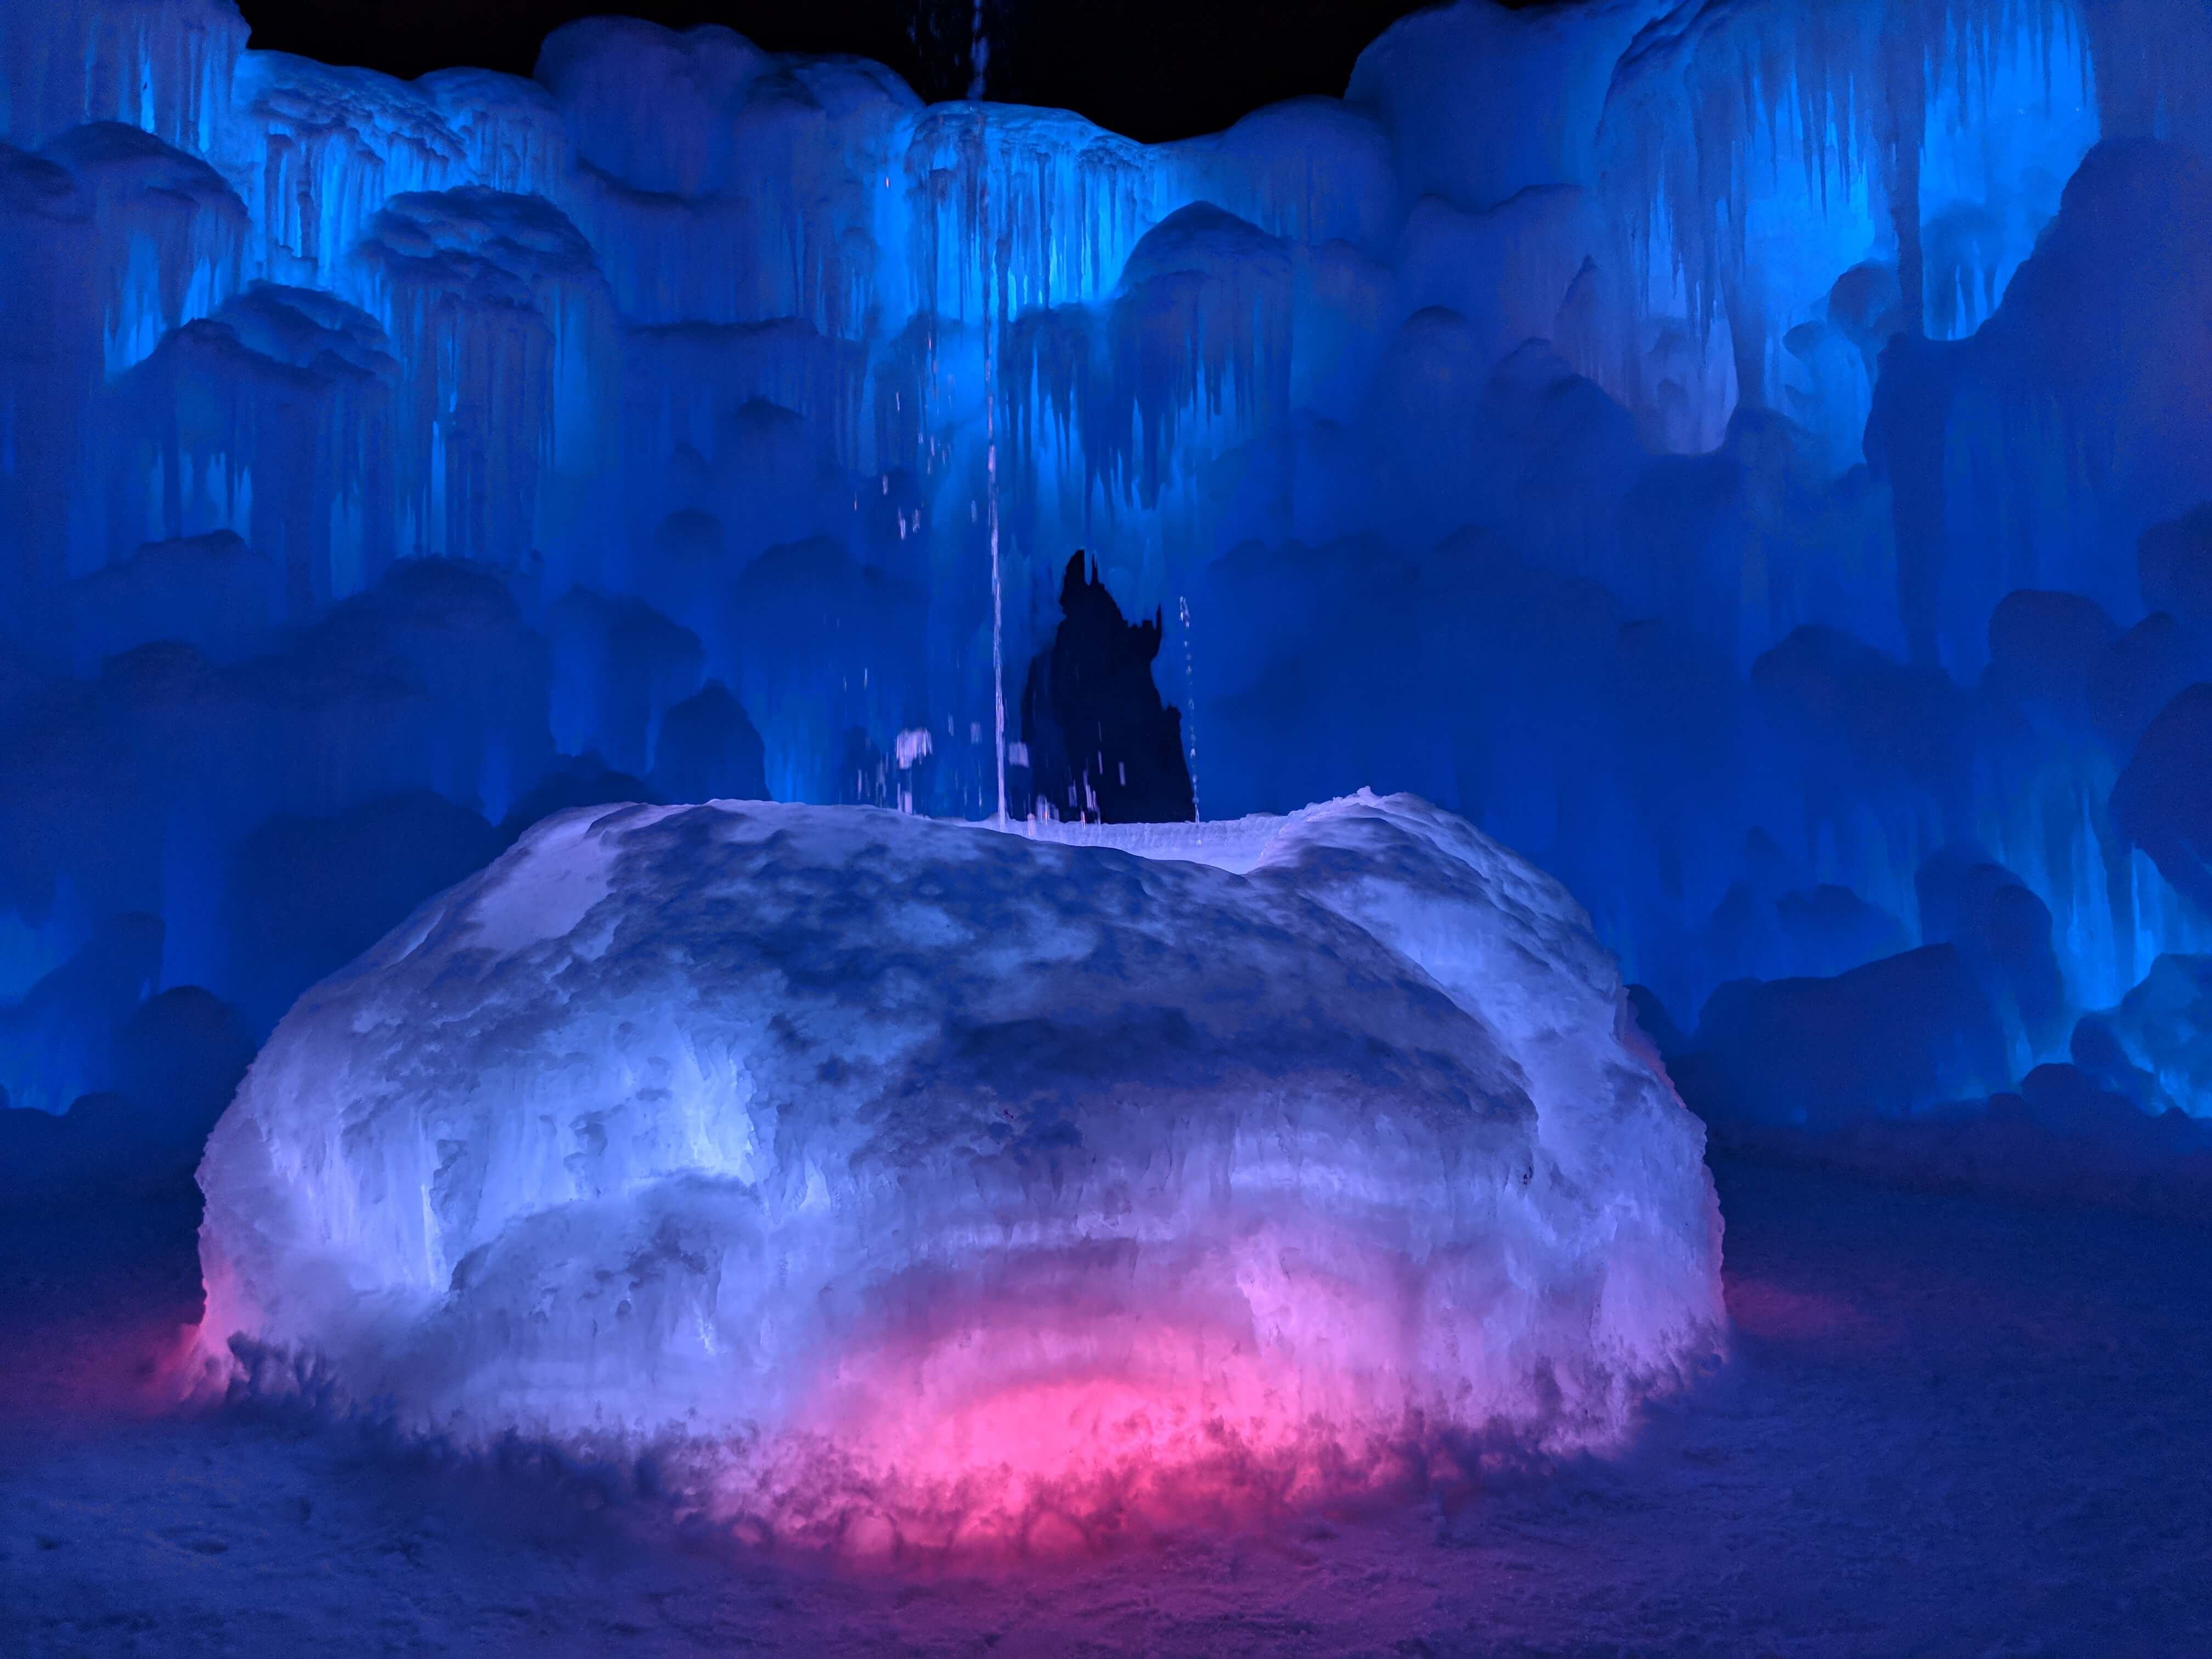 Ice castles fountain